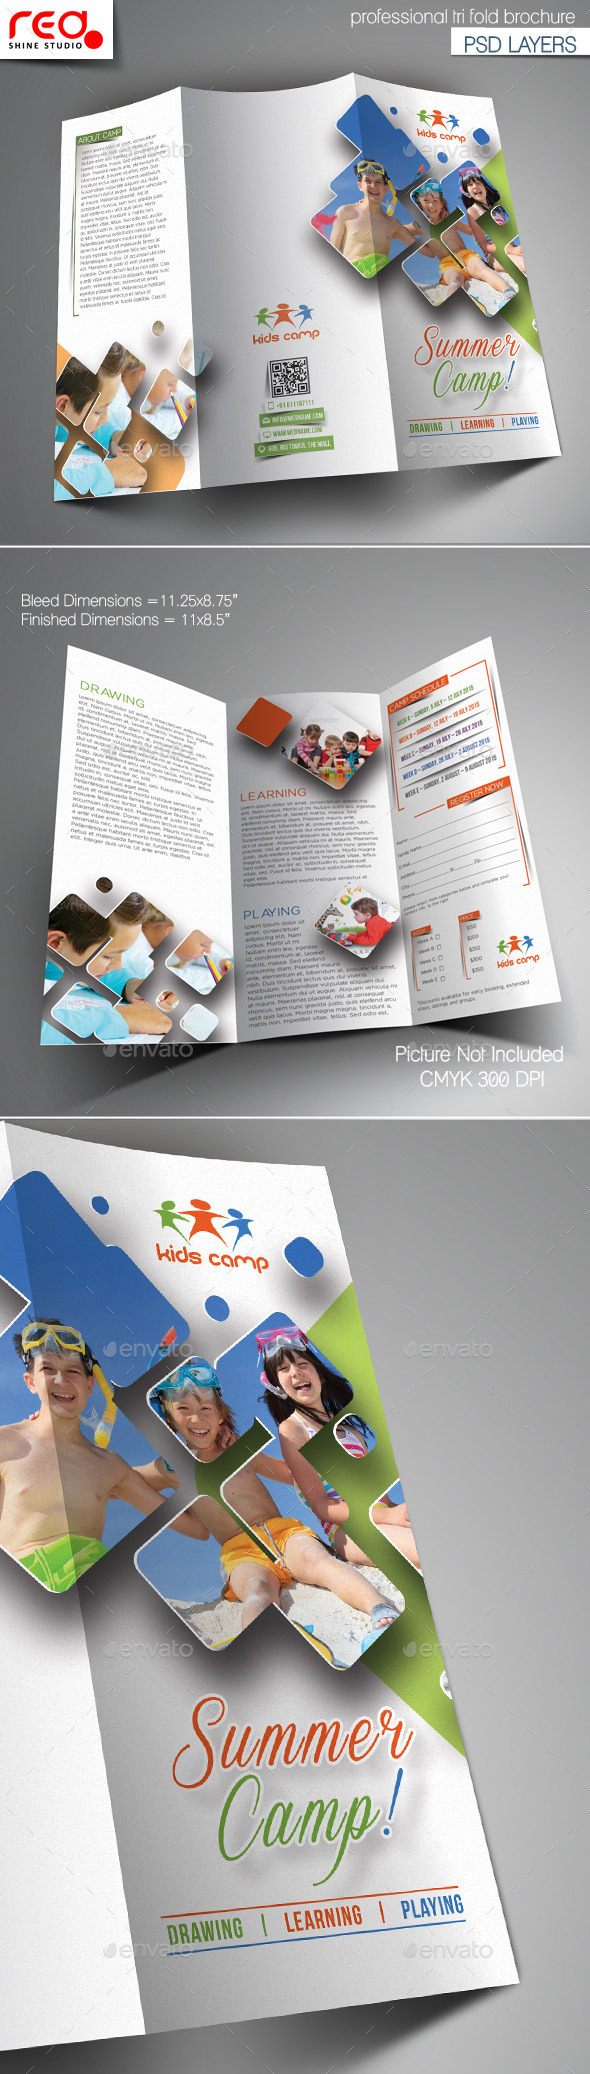 GraphicRiver Summer Camp Trifold Brochure Template 1 10764967